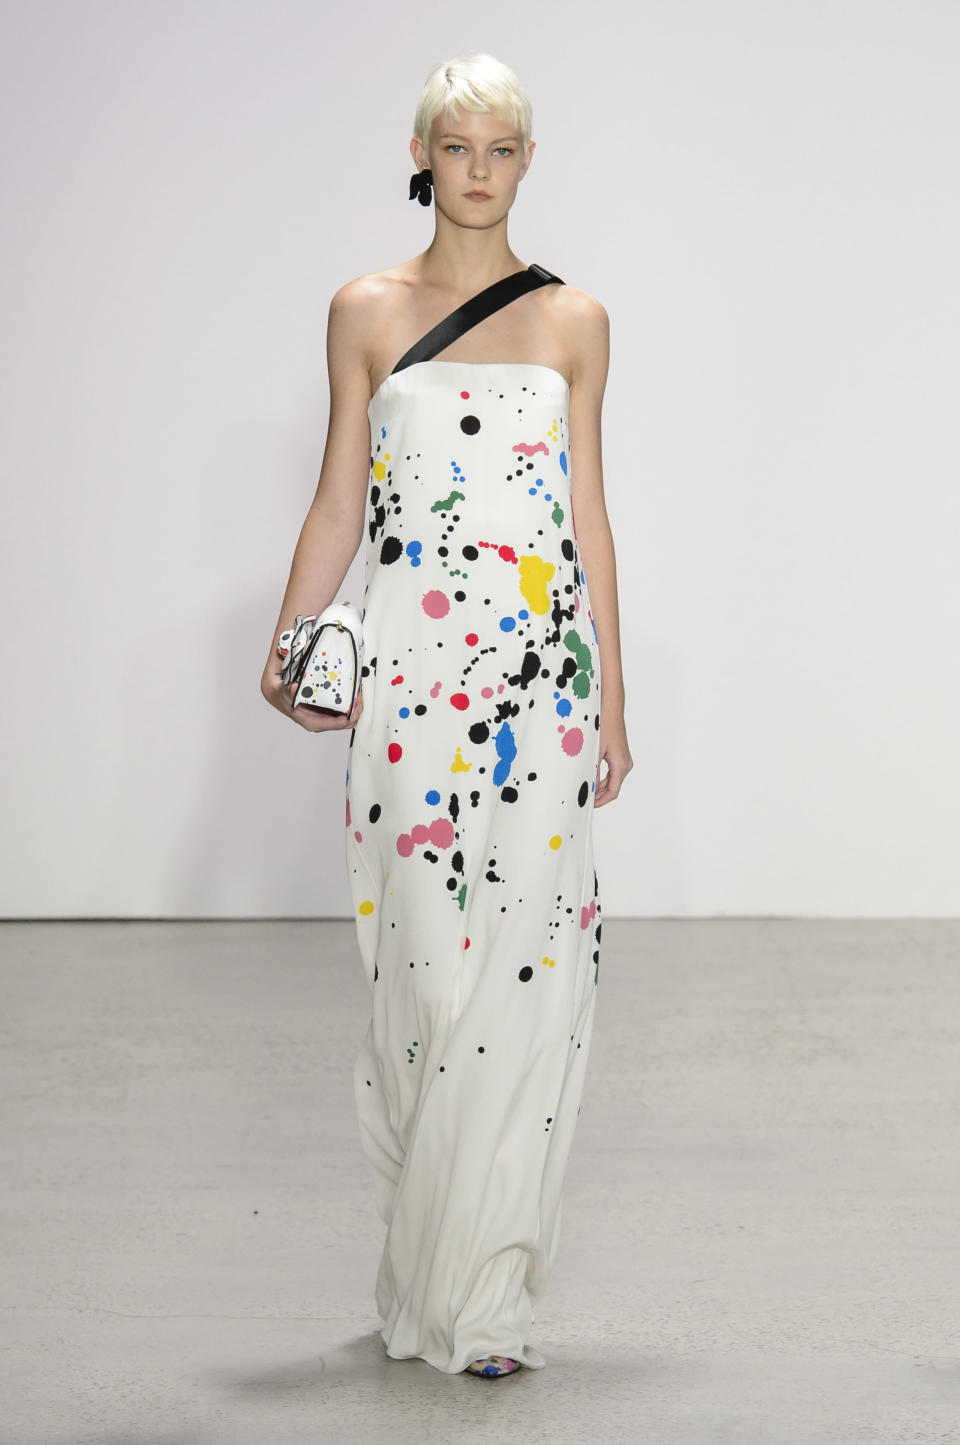 <p><i>Model wears a one-strap, paint-splattered dress from the SS18 Oscar de la Renta collection. (Photo: IMAXtree) </i></p>